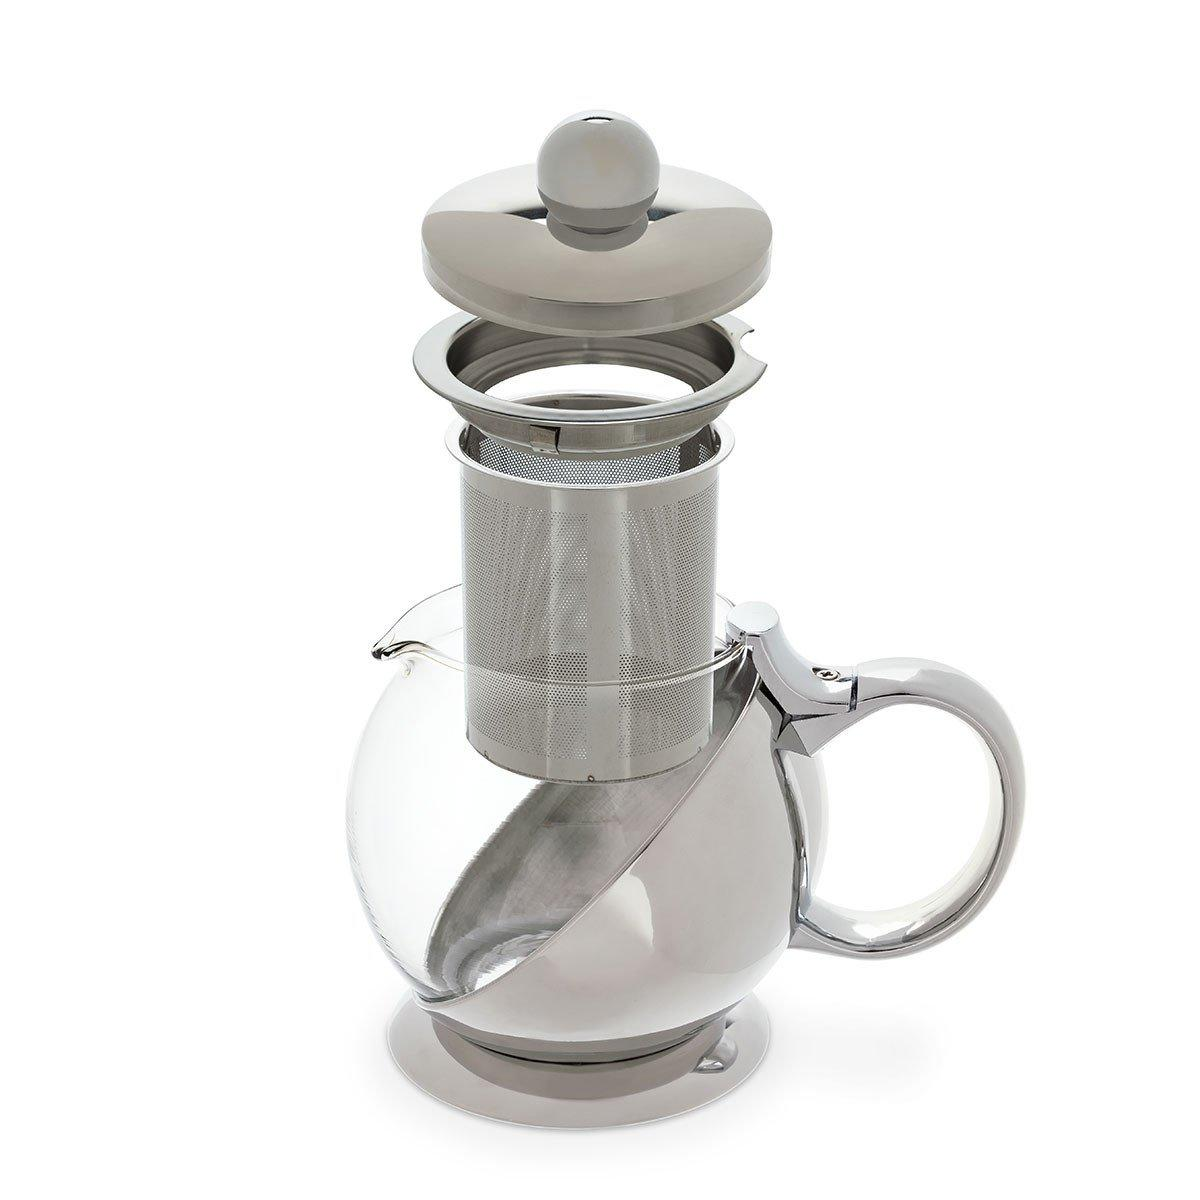 Shelby Stainless Steel Wrapped Teapot and Infuser - Only £34.99